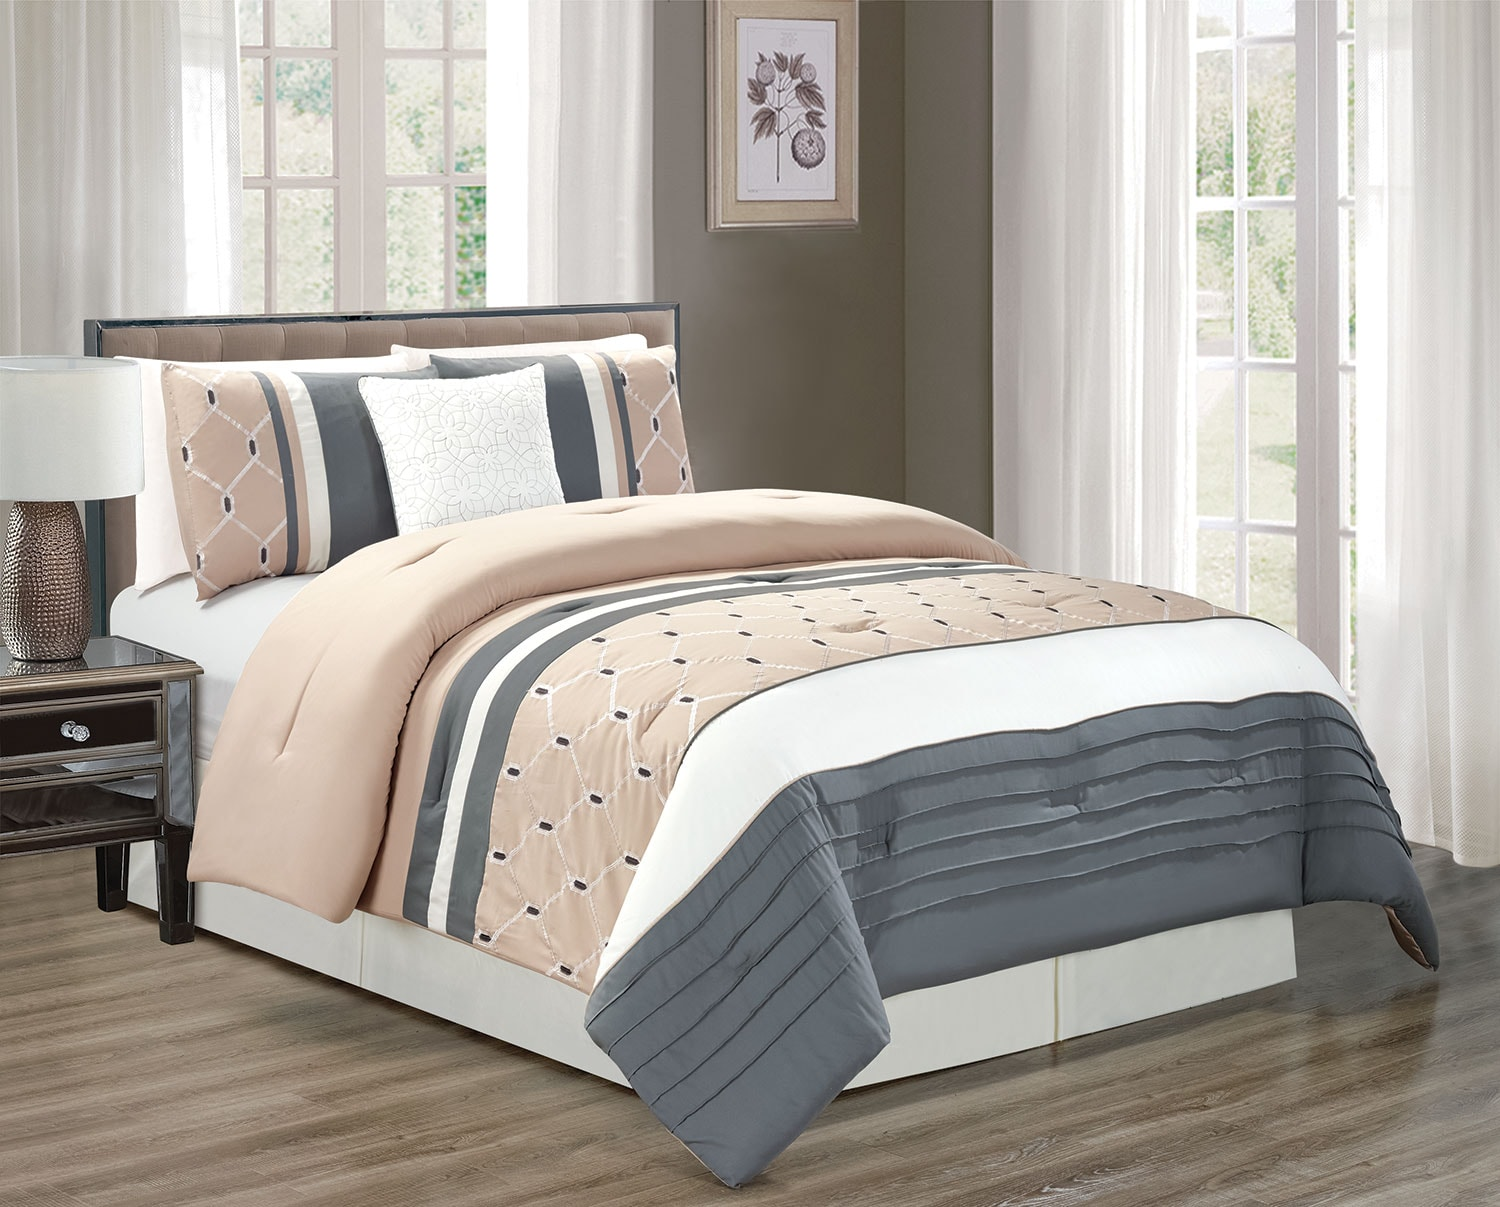 Weston 4-Piece King Comforter Set